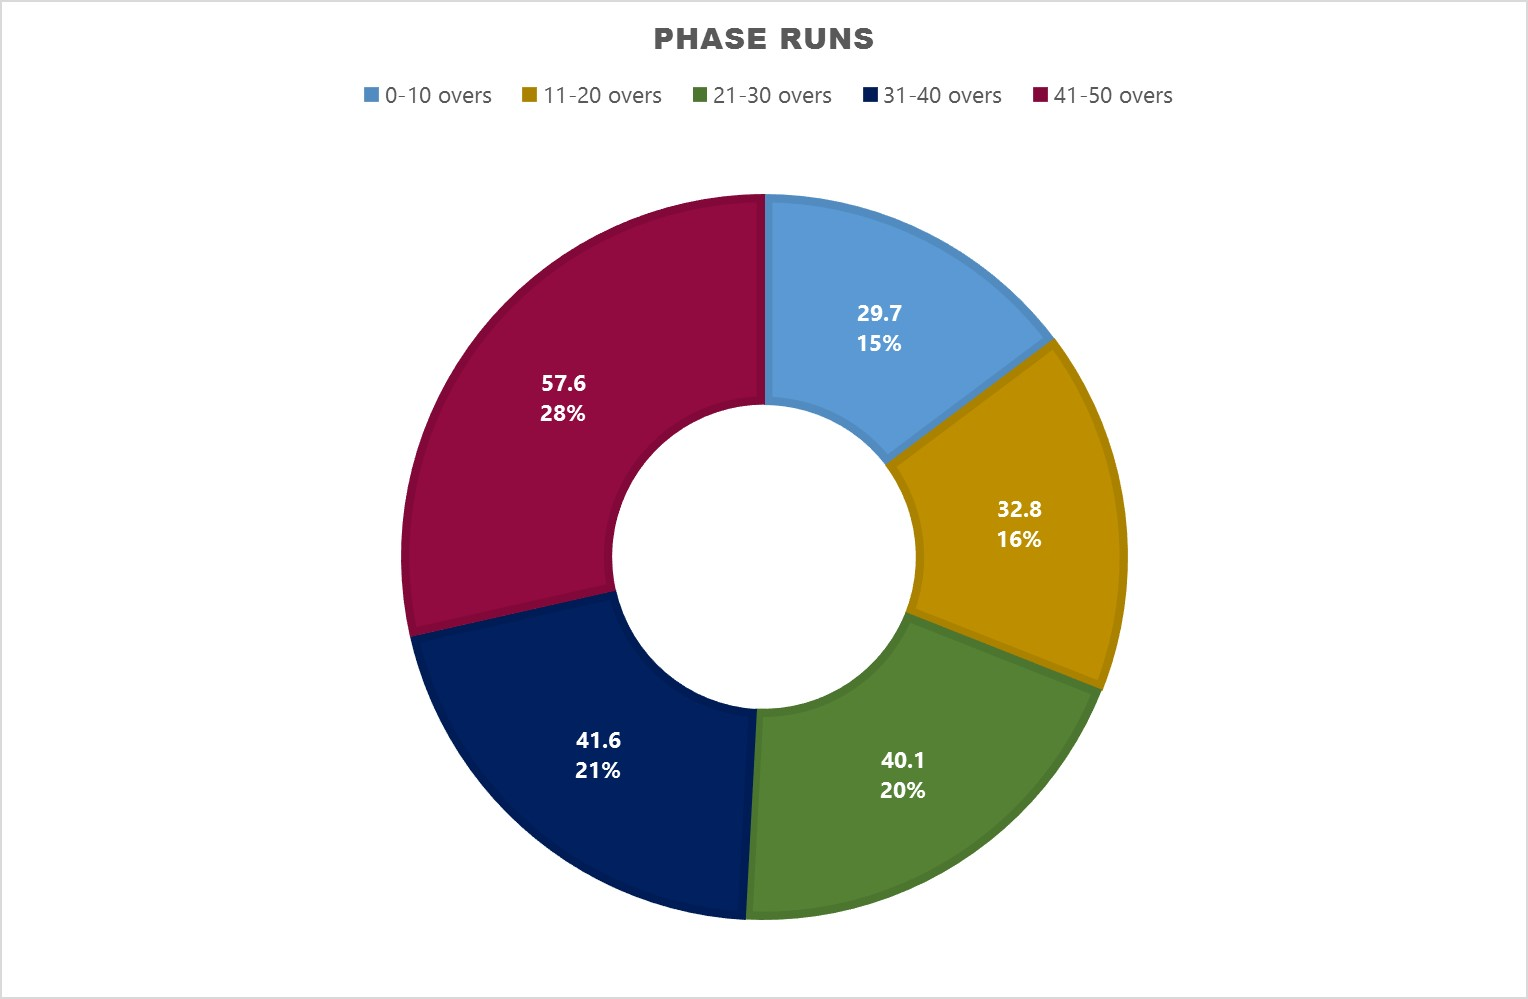 Average Runs scored by West in each 10 over phase